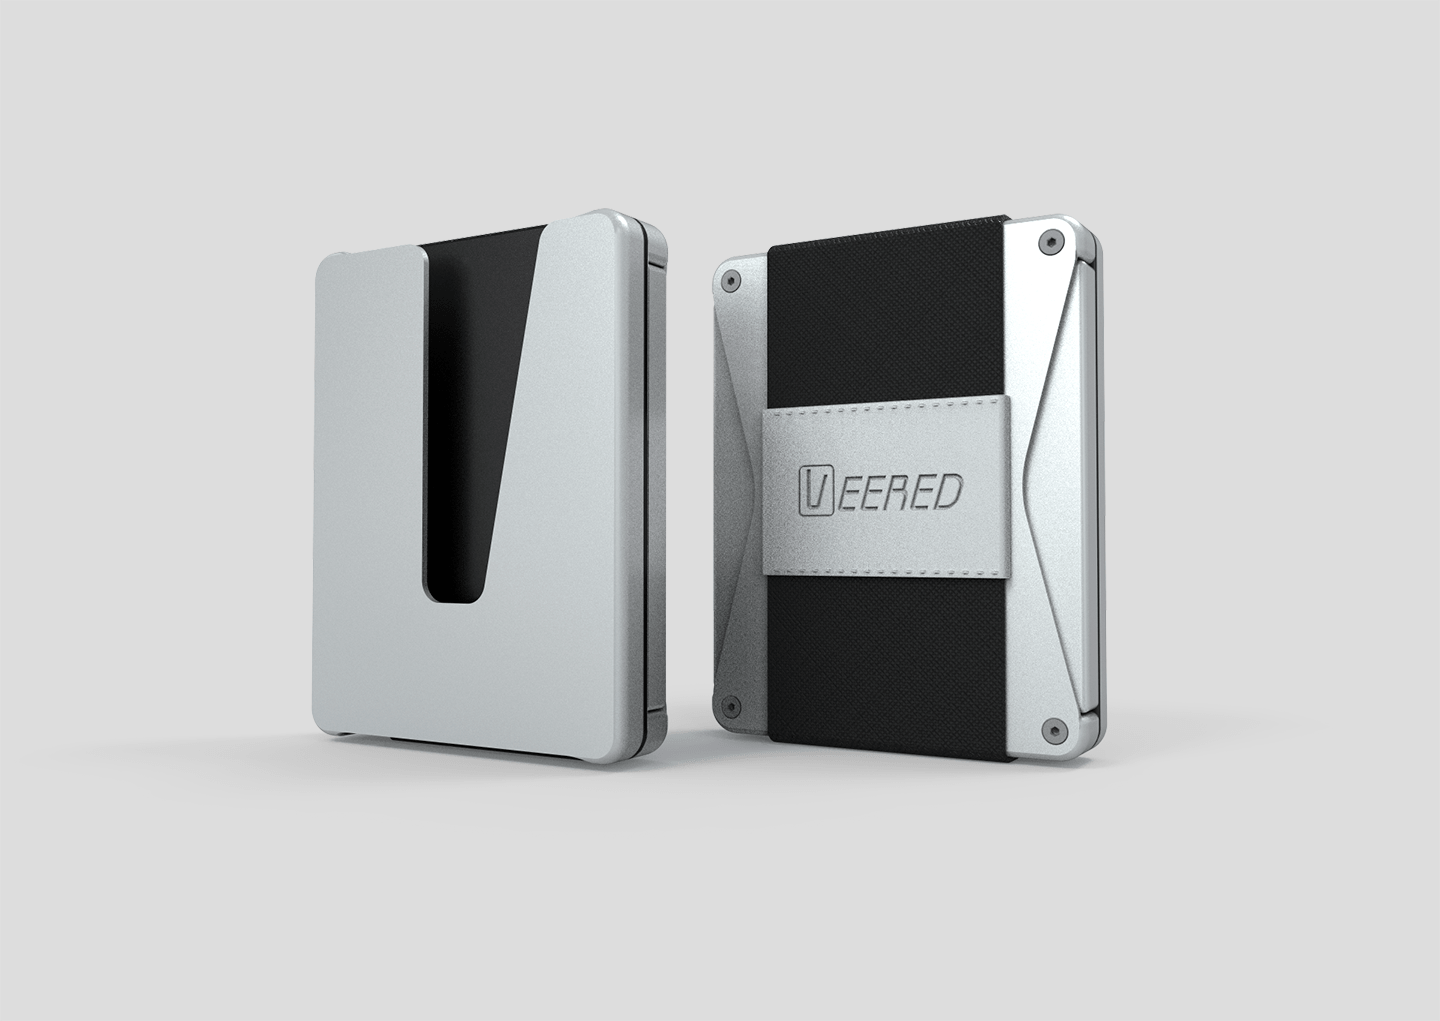 Veered Wallet Wallet Sleek Life Design LLC Grey + Black